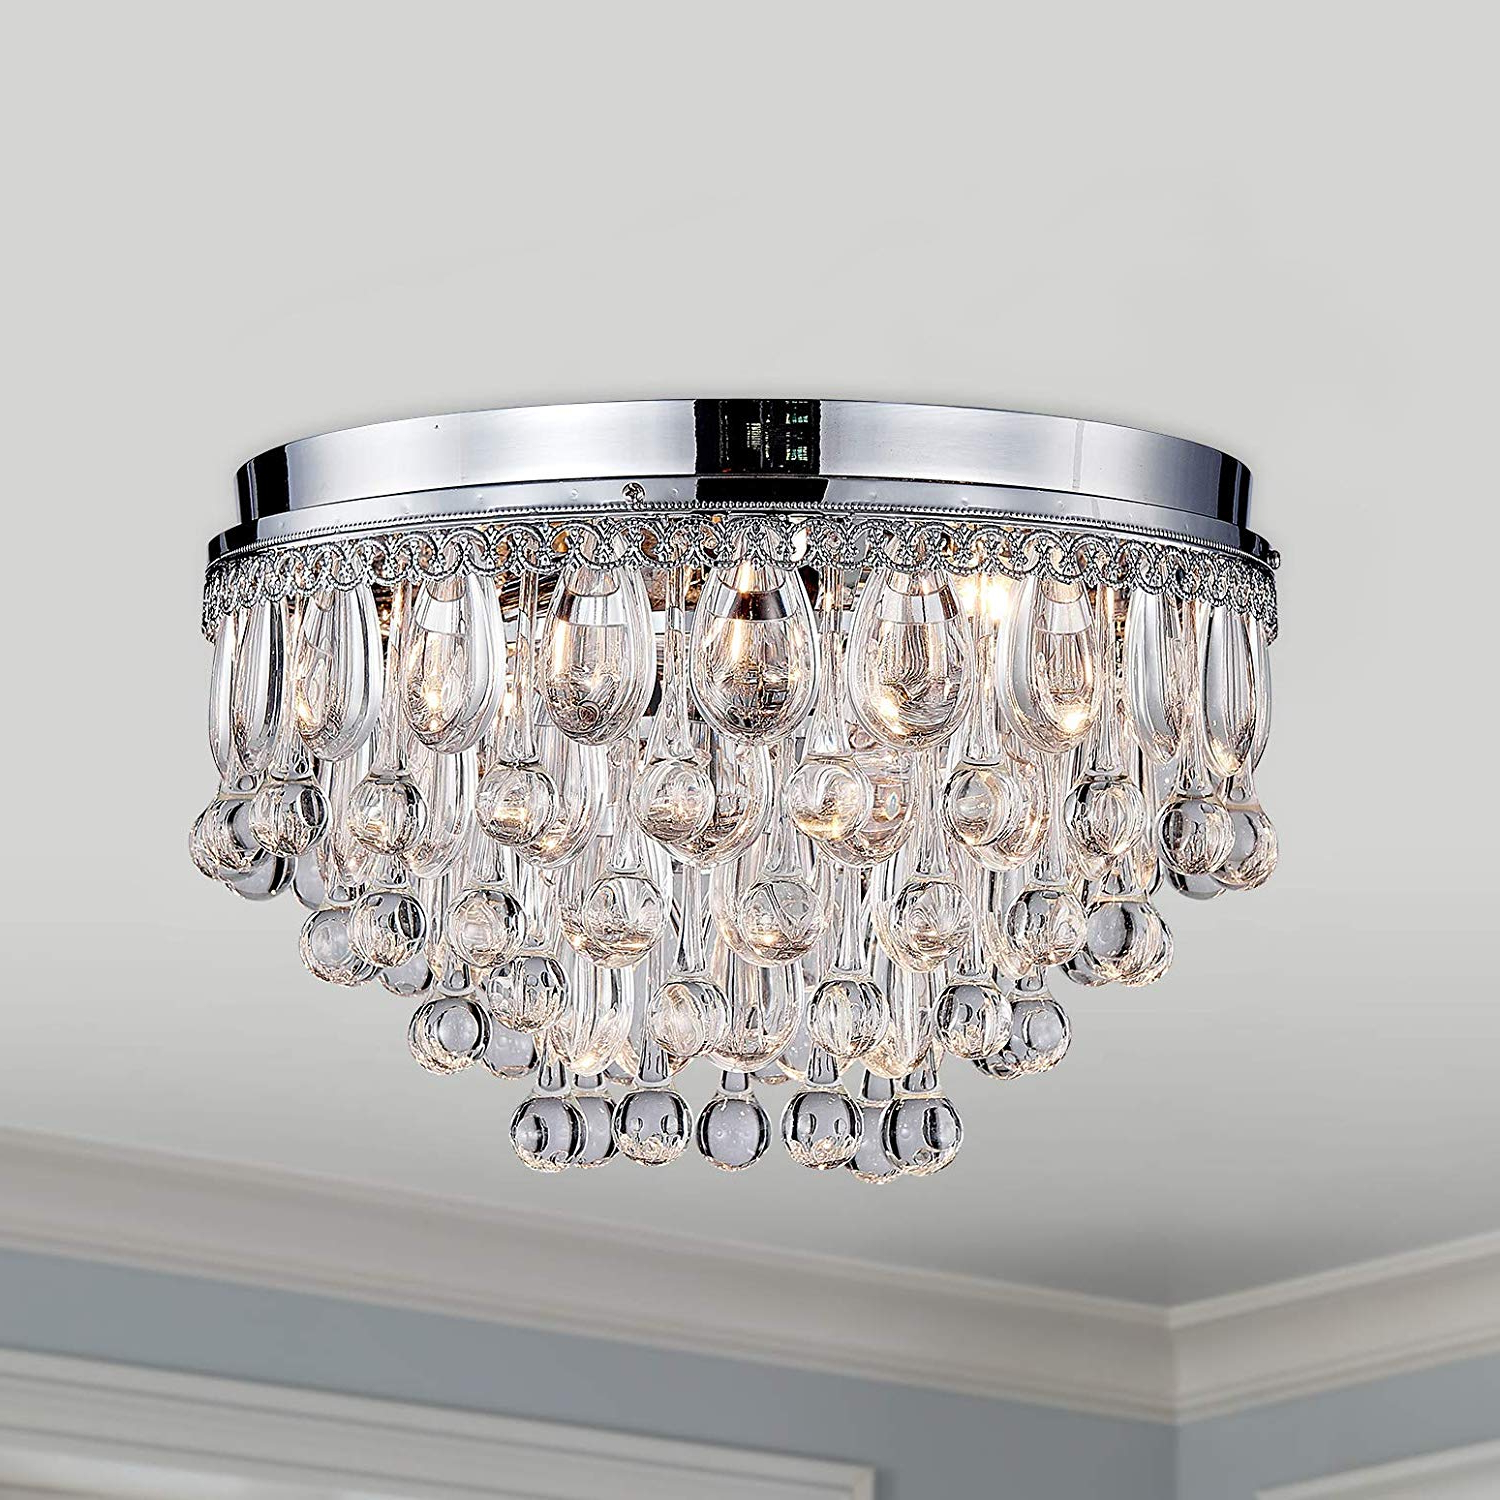 2019 Donna 4 Light Globe Chandeliers With Modern Clear Crystal Raindrop Round Chandelier Flush Mount Led Ceiling  Light Fixture Lighting Lamp For Dining Room Bathroom Bedroom Livingroom 4  E (View 16 of 25)